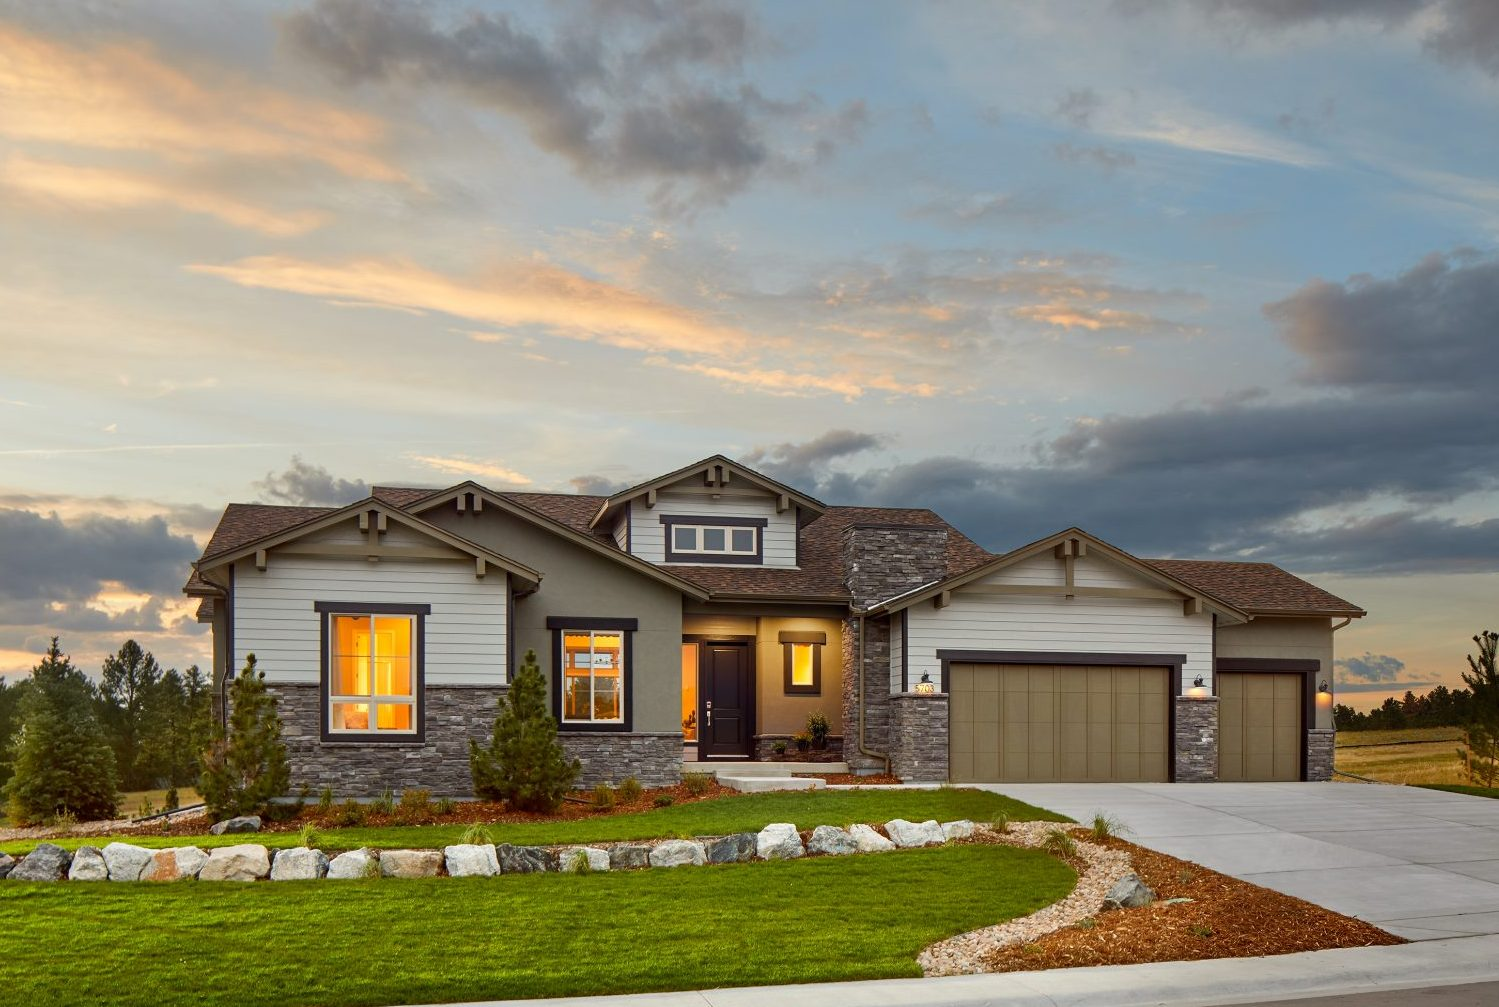 Gorgeous single-family ranch home with craftsman style details designed by Godden Sudik Architects